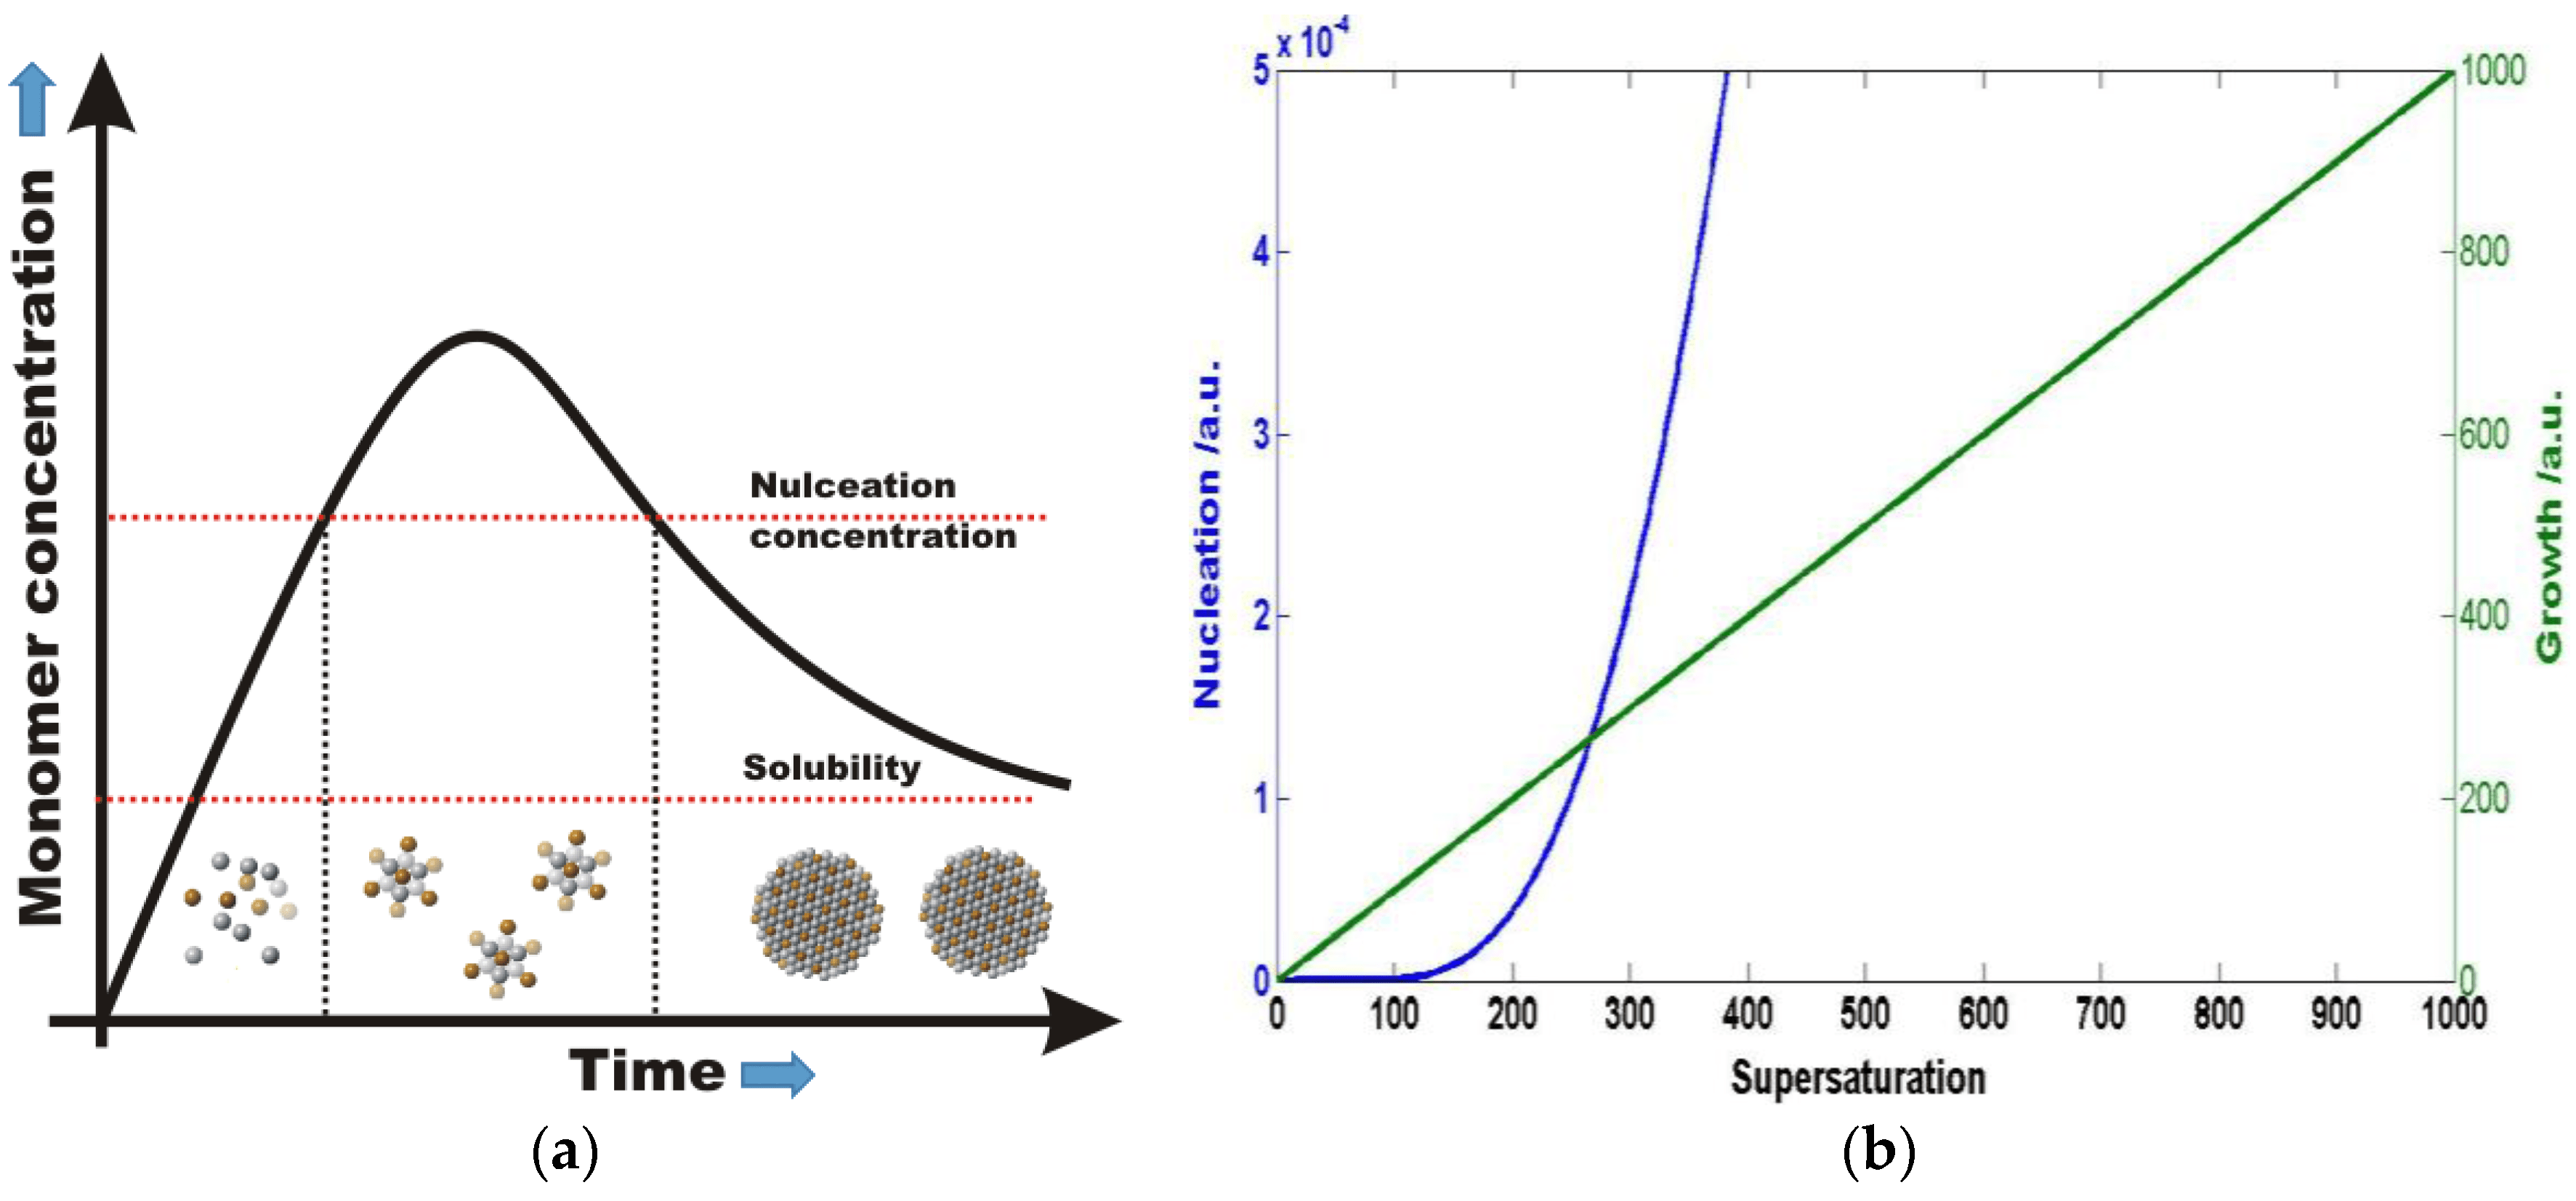 surface waves diagram accessory relay wiring nanomaterials free full text rapid nanoparticle